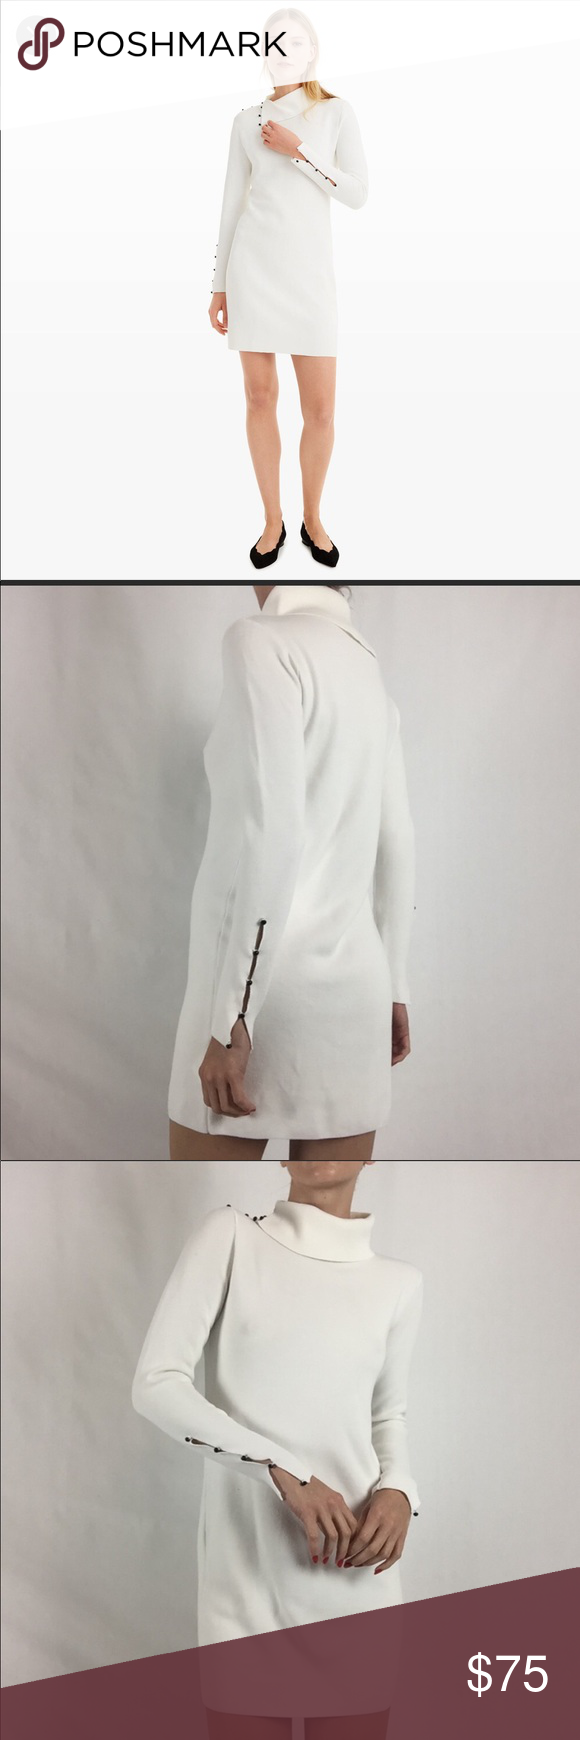 "19d6011017 Club Monaco cowl neck white sweater dress XS Brand new without tag I have  not worn the dress at all Polyester elastane Length 31"" Mid thigh length  I m 5 3"""